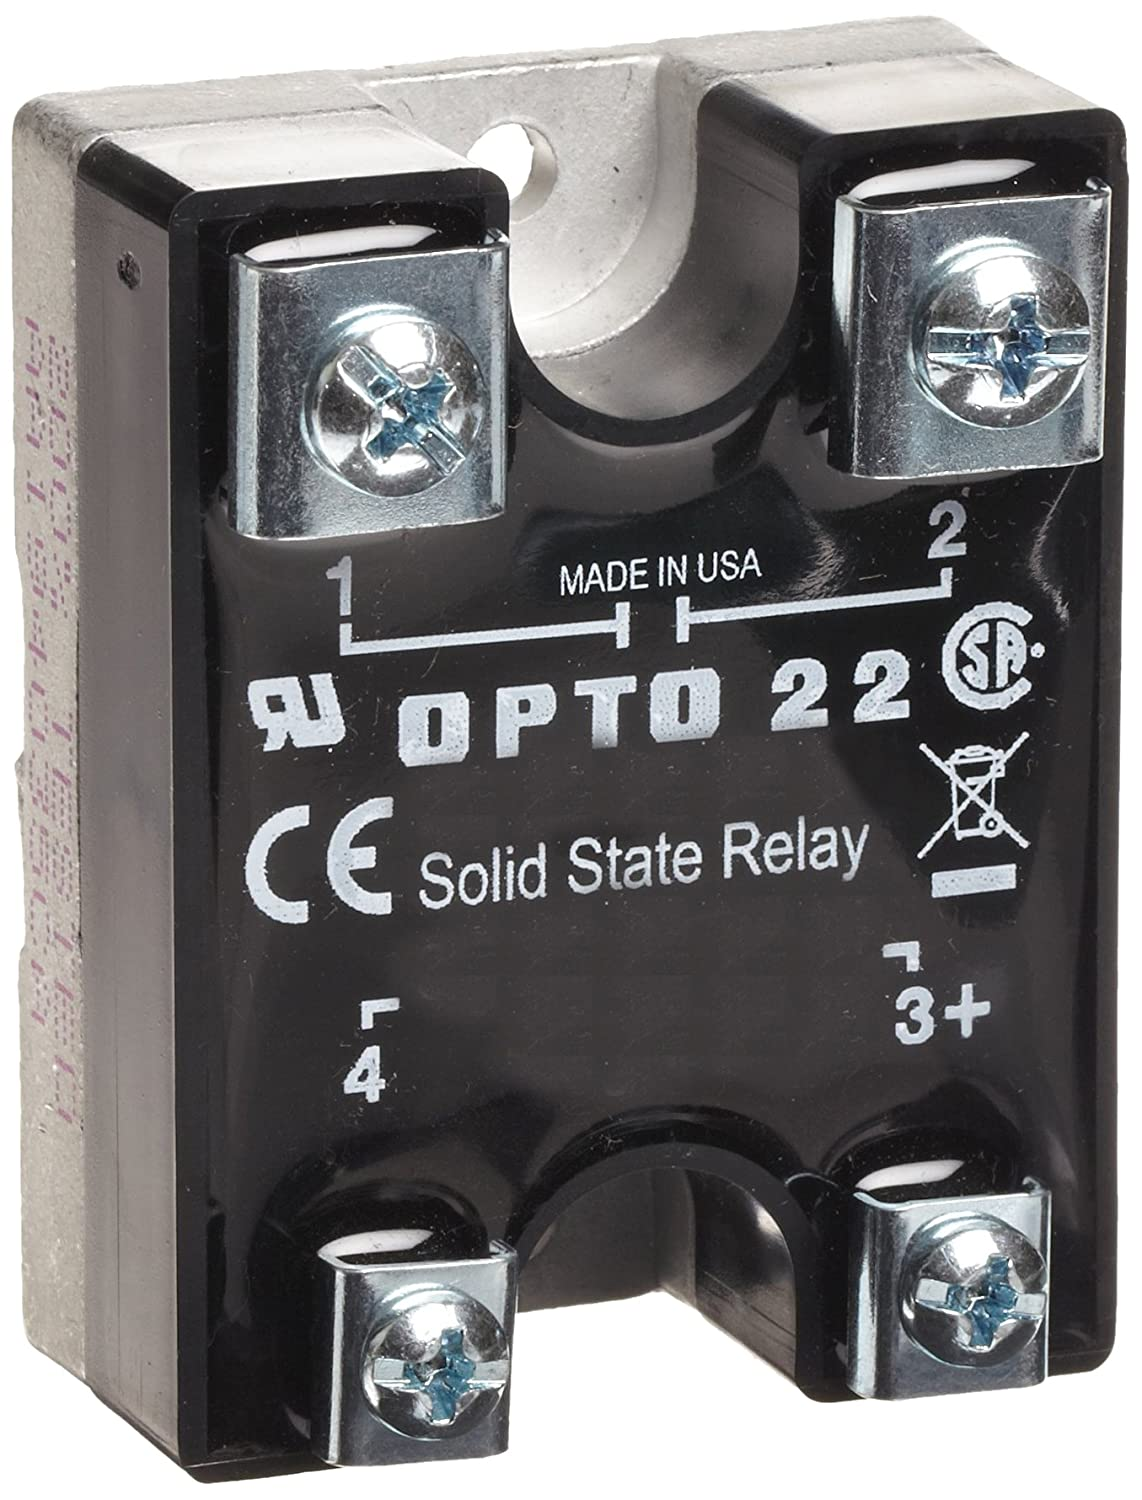 45 Amp 4000 V Optical Isolation Opto 22 240D45 DC Control Solid State Relay 1//2 Cycle Maximum Turn-On//Off Time 25-65 Hz Operating Frequency 240 VAC